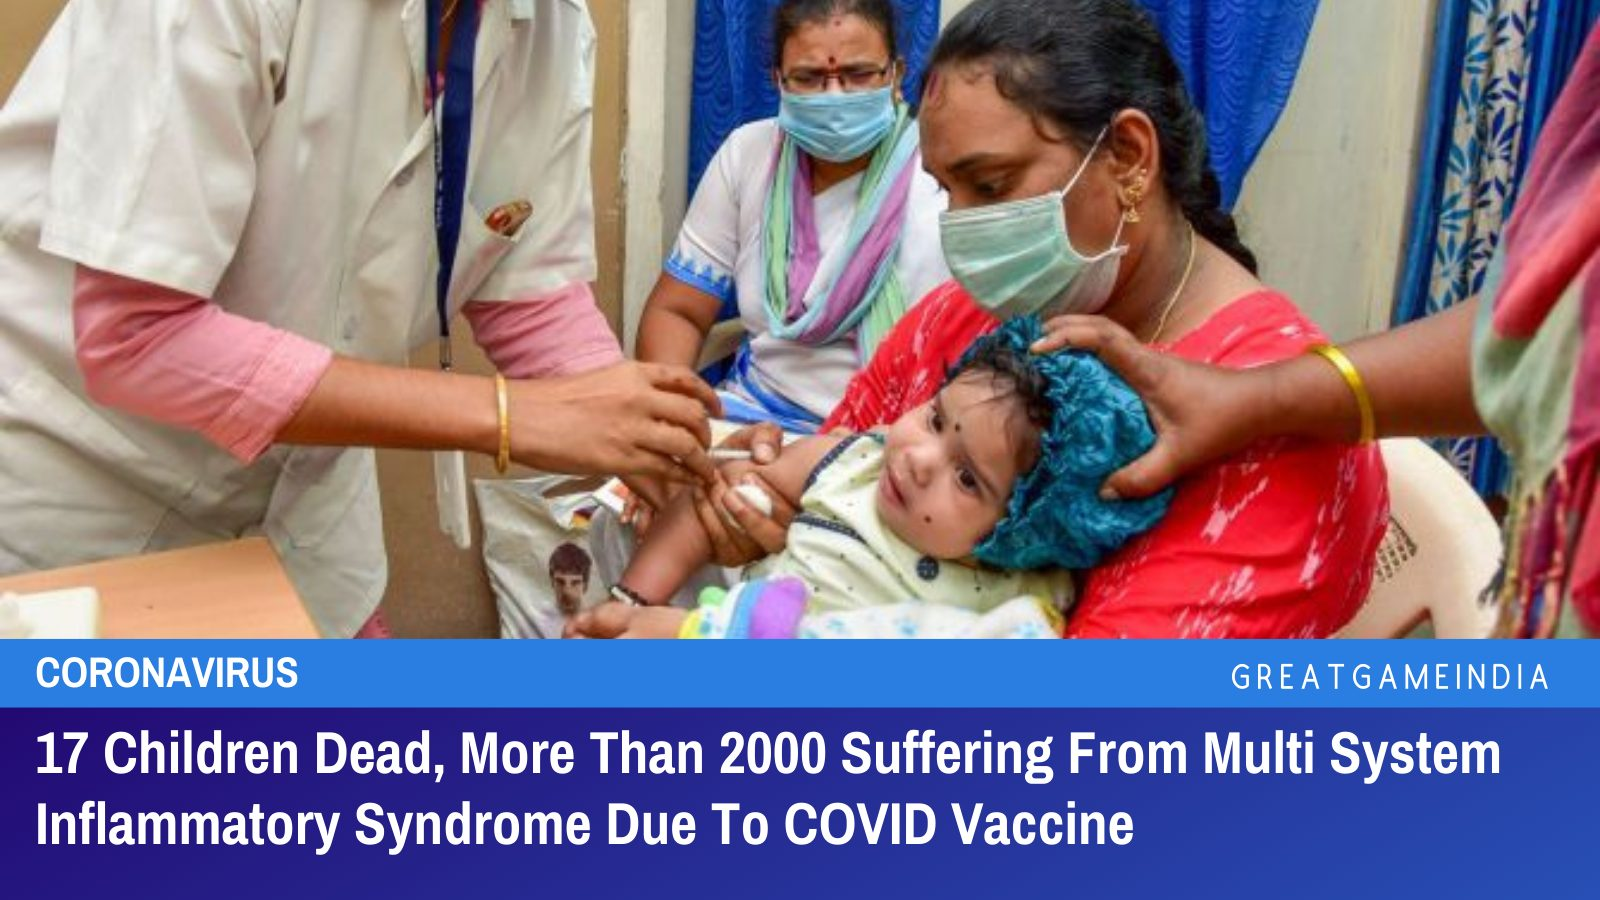 17 Children Dead, More Than 2000 Suffering From Multi System Inflammatory Syndrome Due To COVID Vaccine